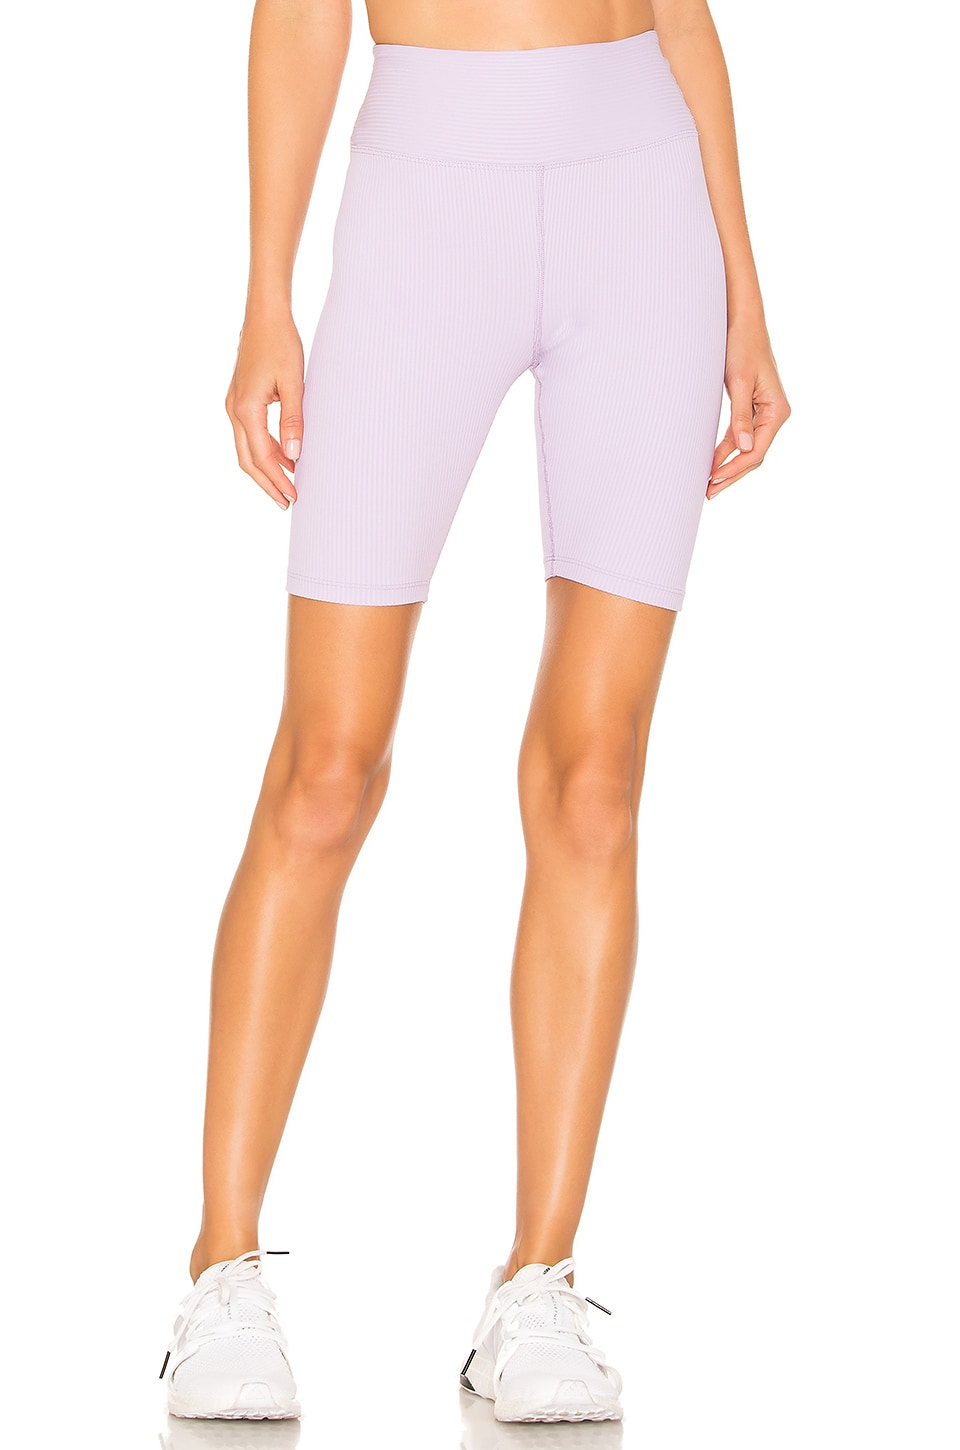 YEAR OF OURS X REVOLVE Ribbed Biker Short in Lilac